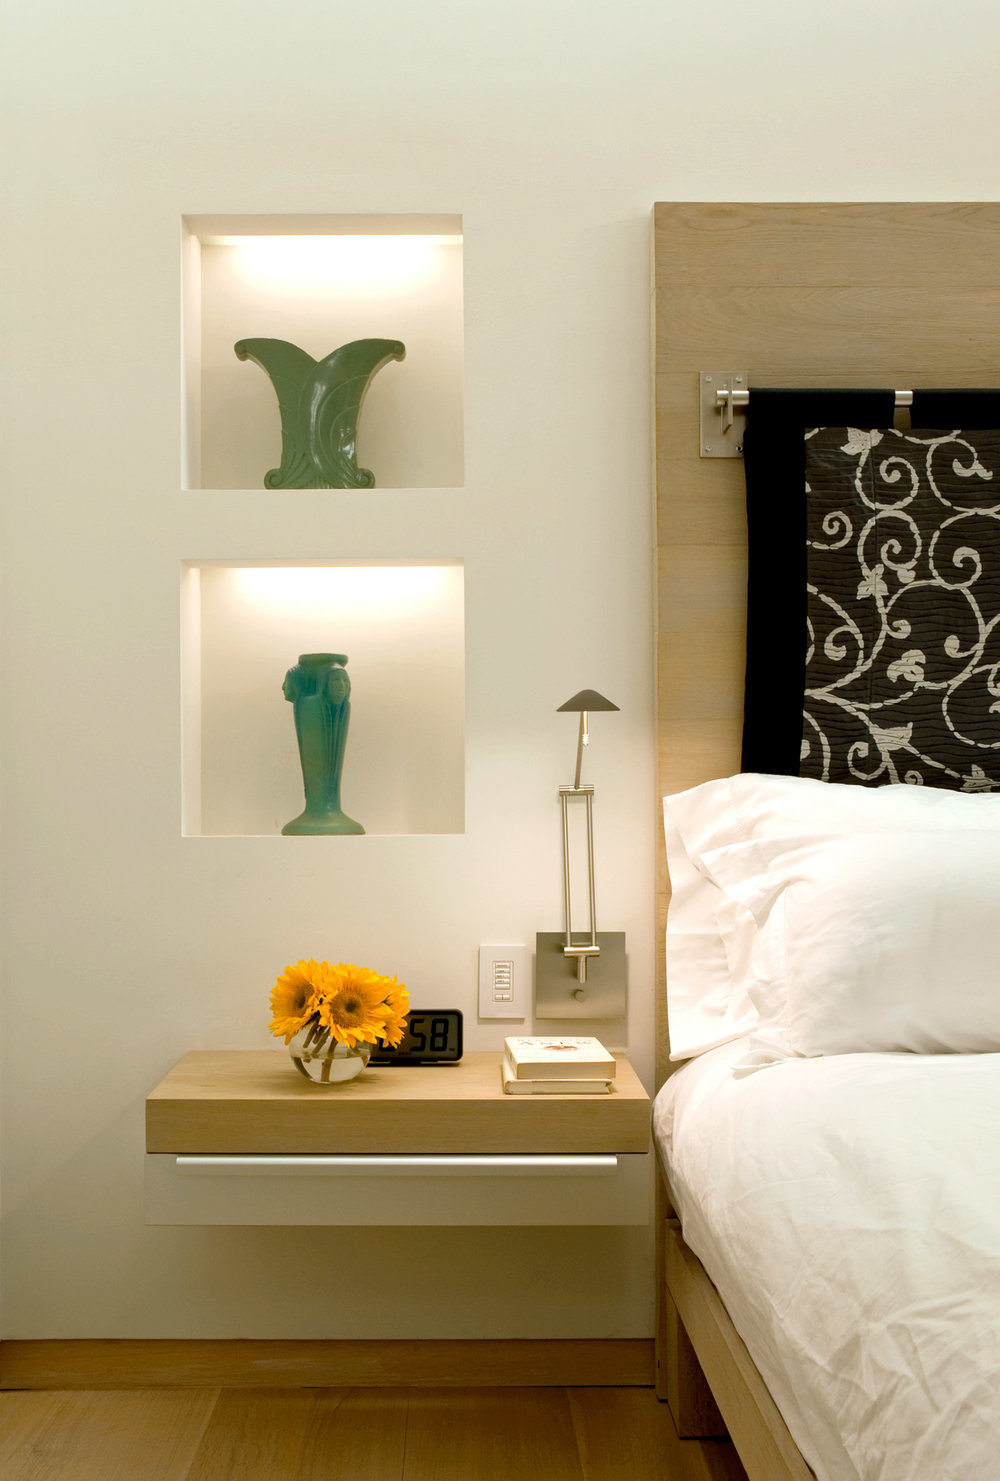 NYC Loft Renovation - bedside and wall niches